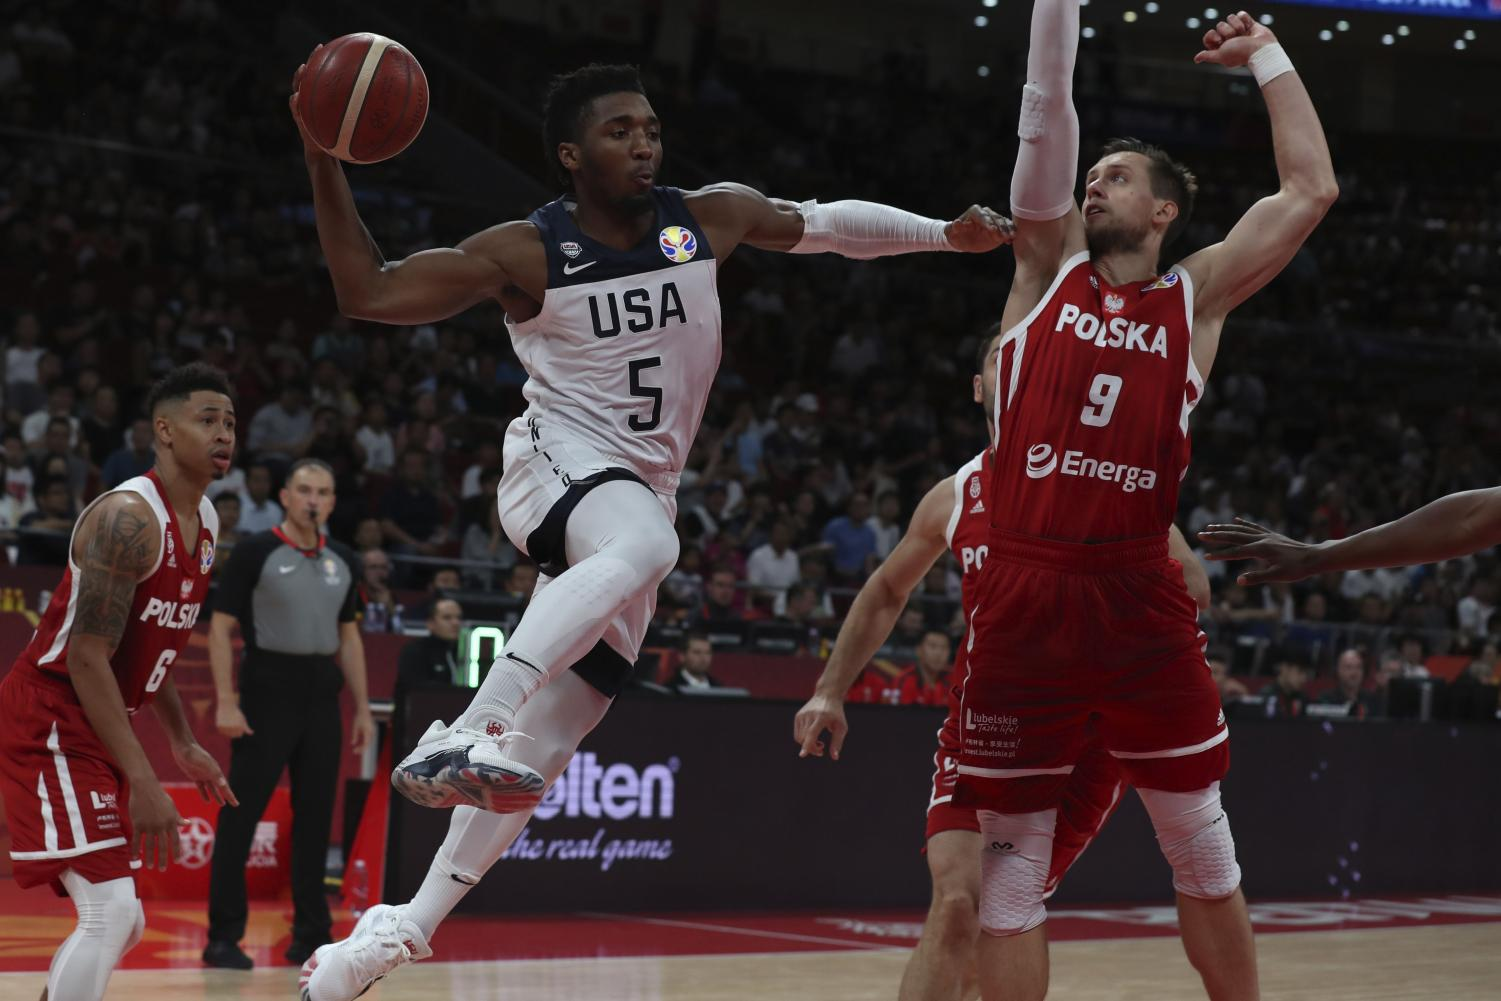 Donovan Mitchell scored 16 points contributing to the win of USA.